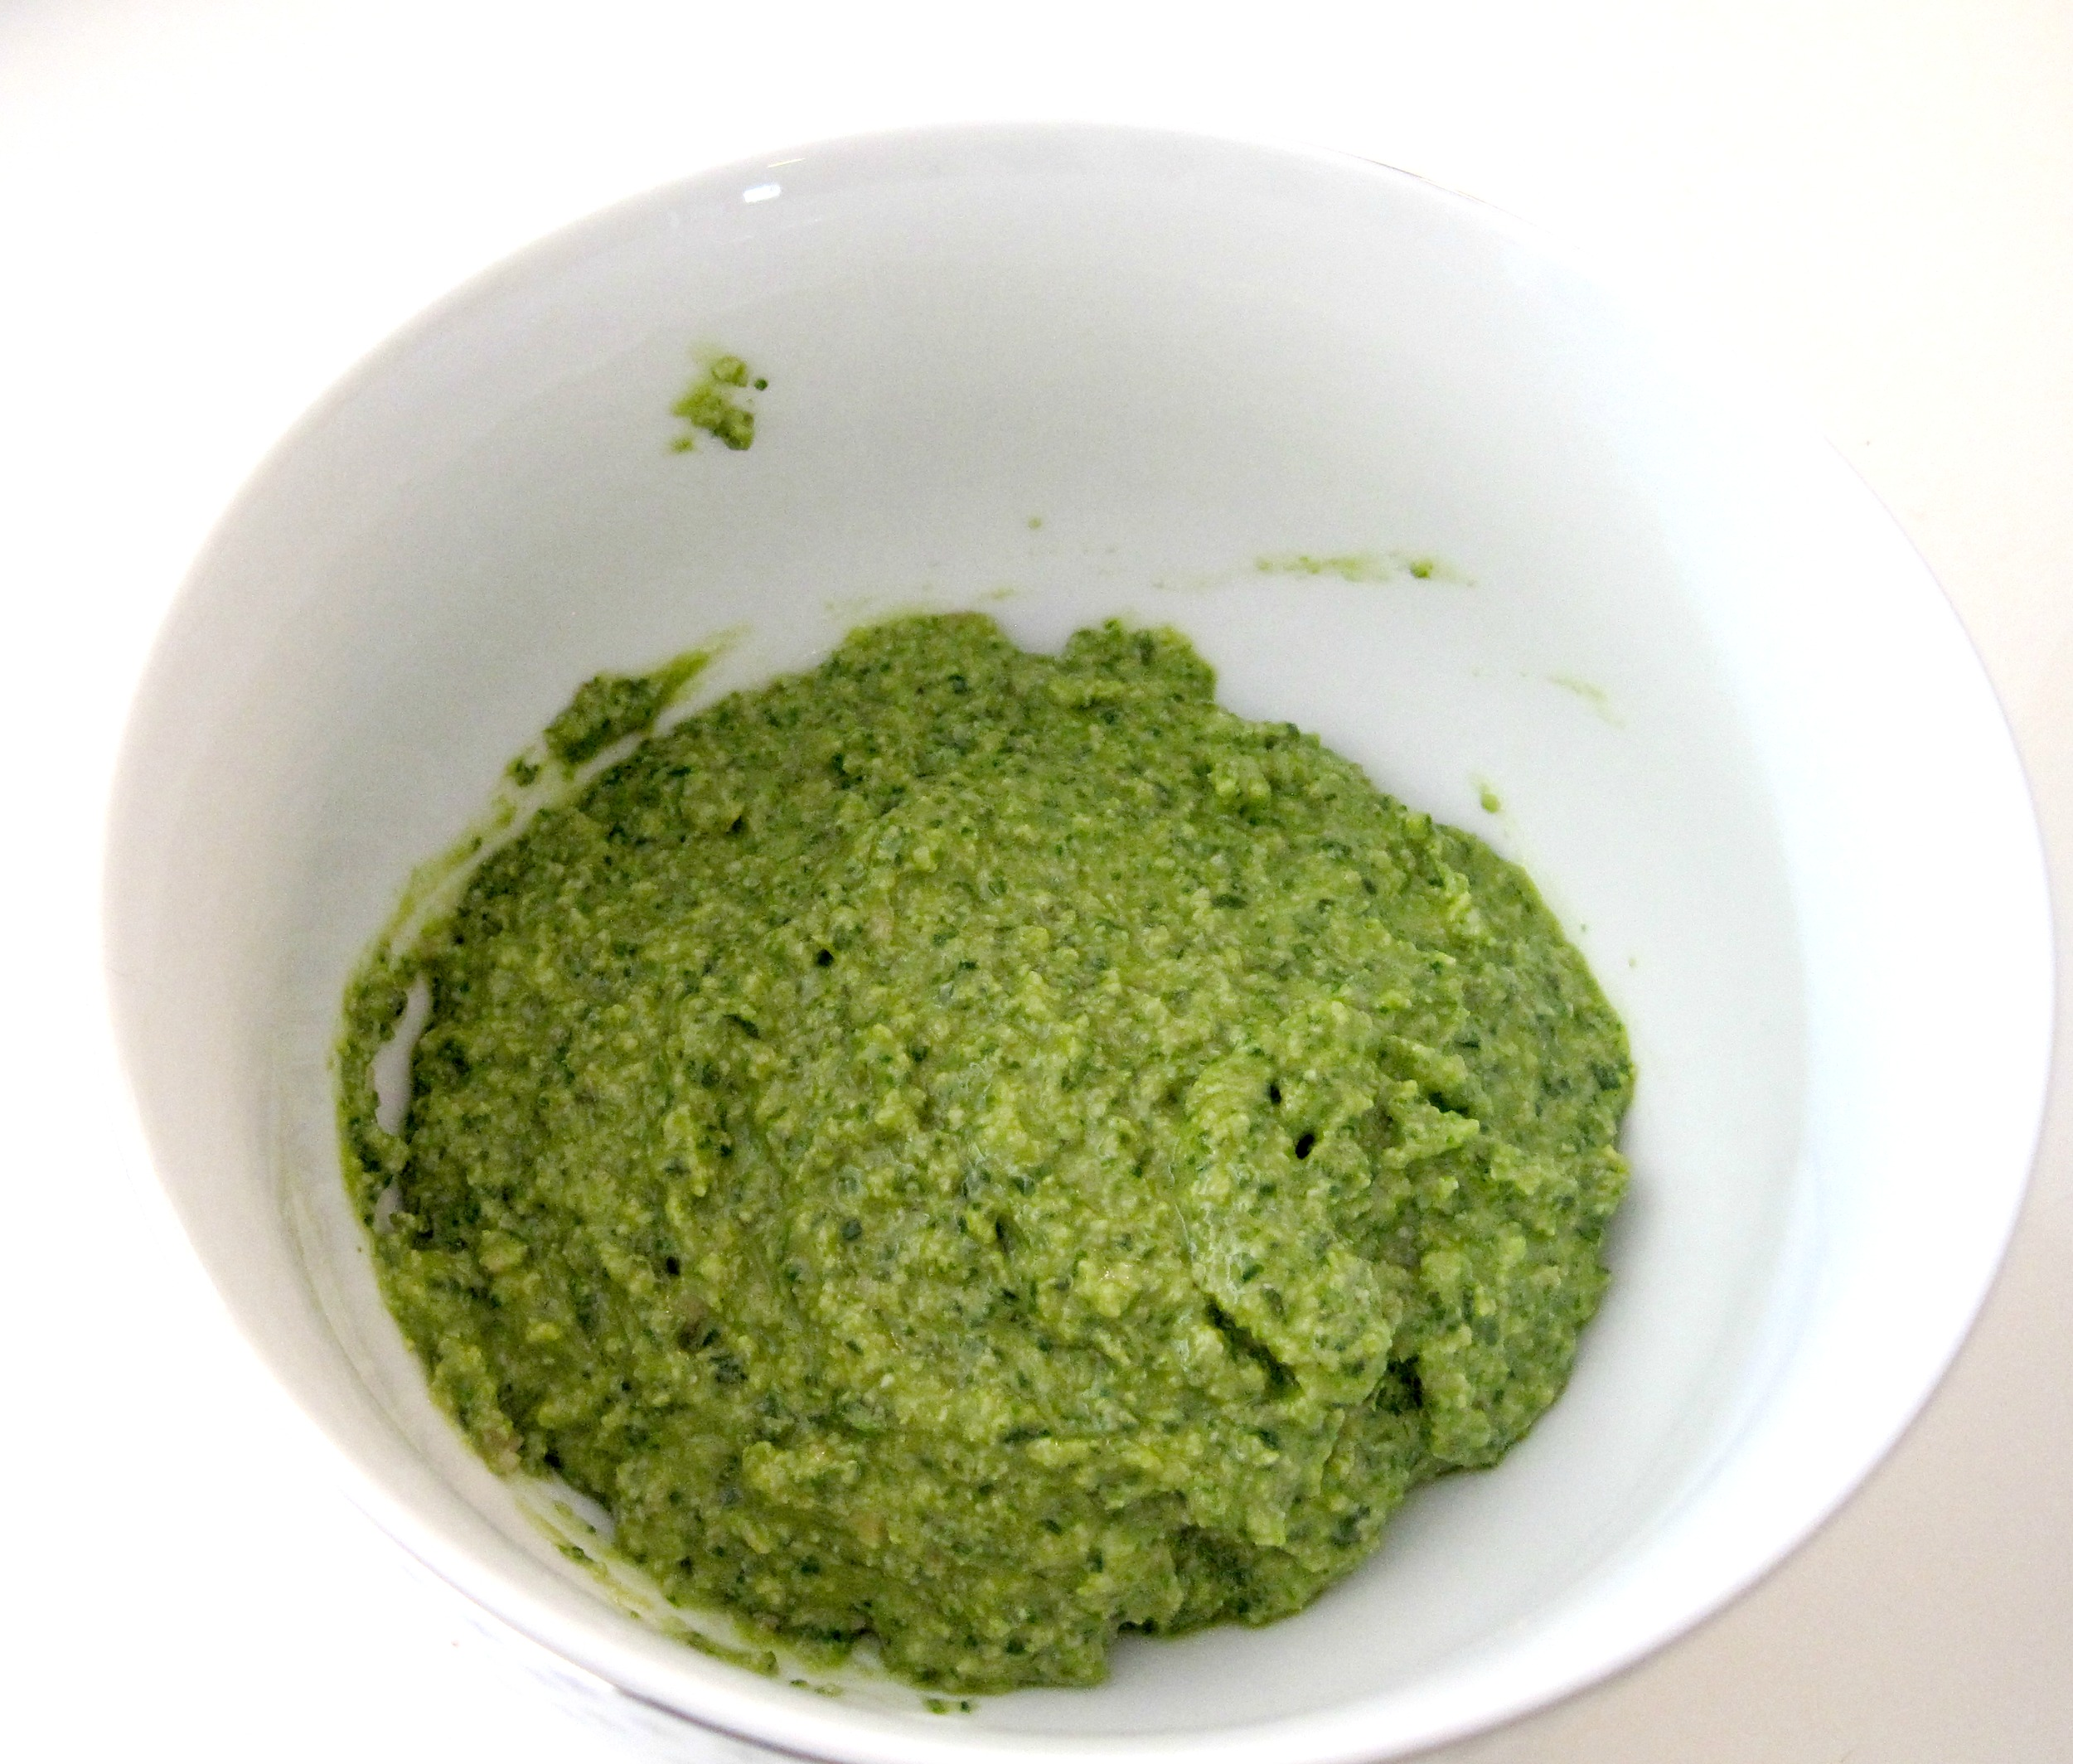 Homemade Basil Pesto Completed